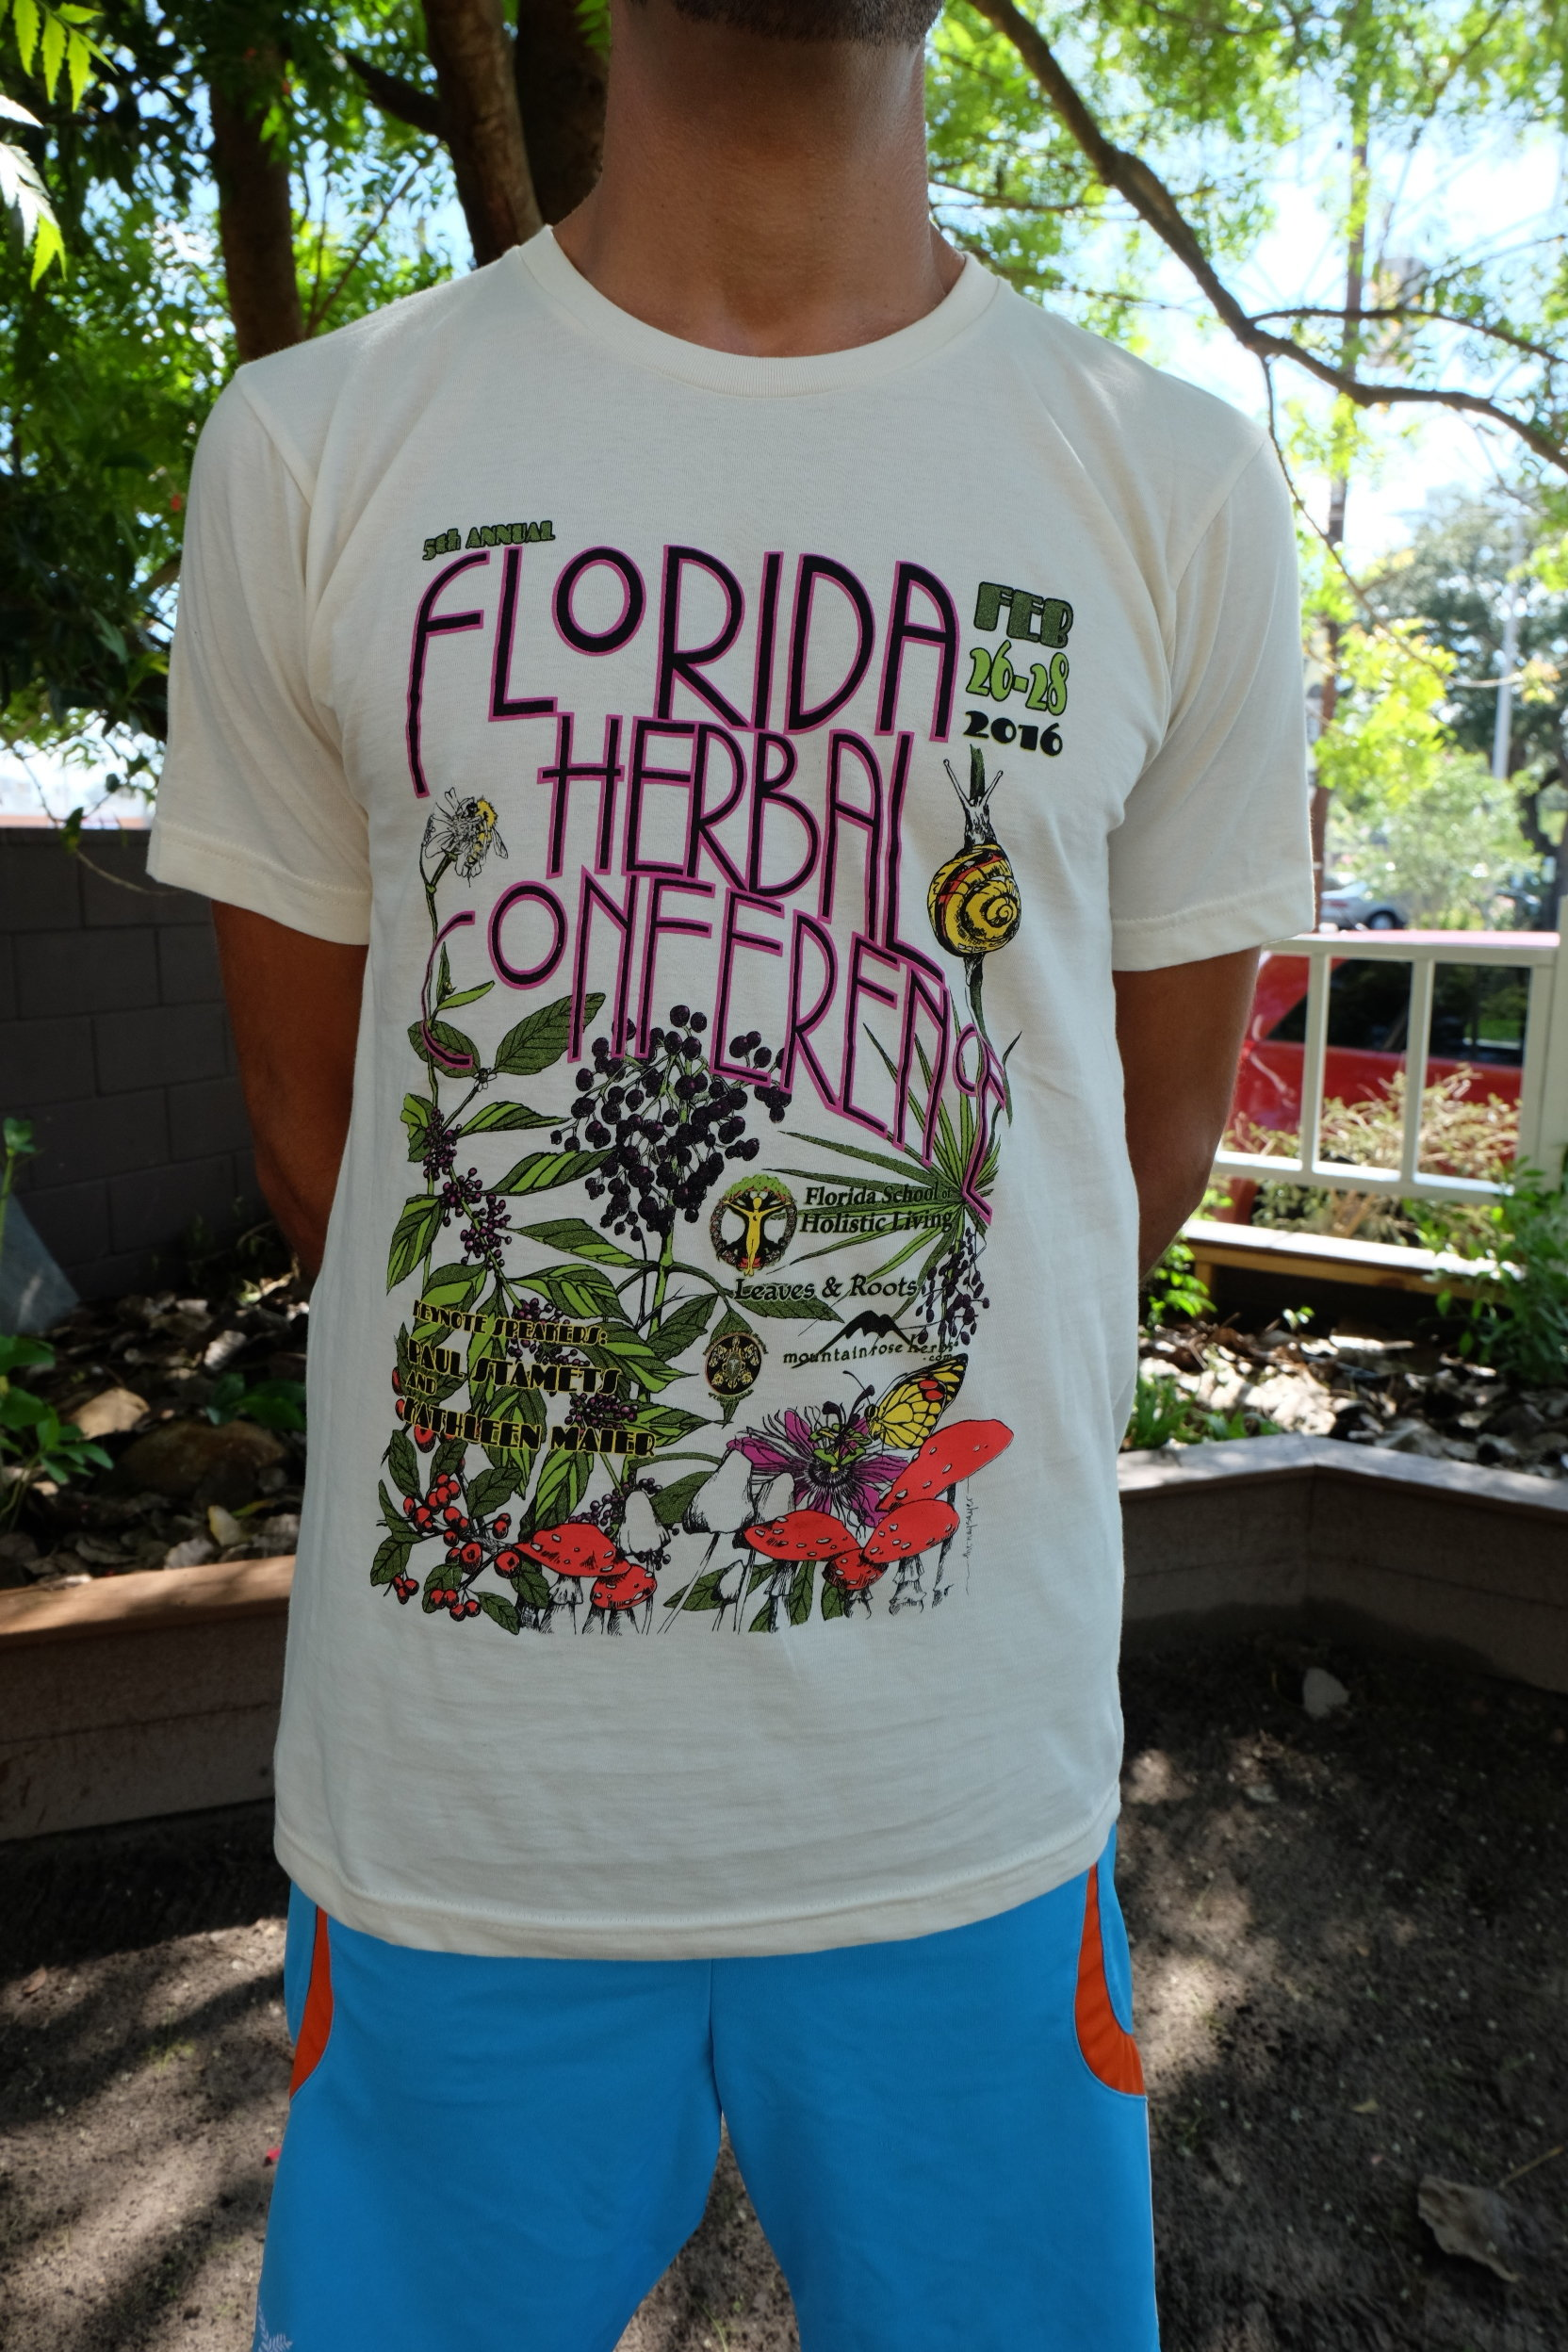 2016 Florida Herbal Conference Short Sleeved Tee 00026